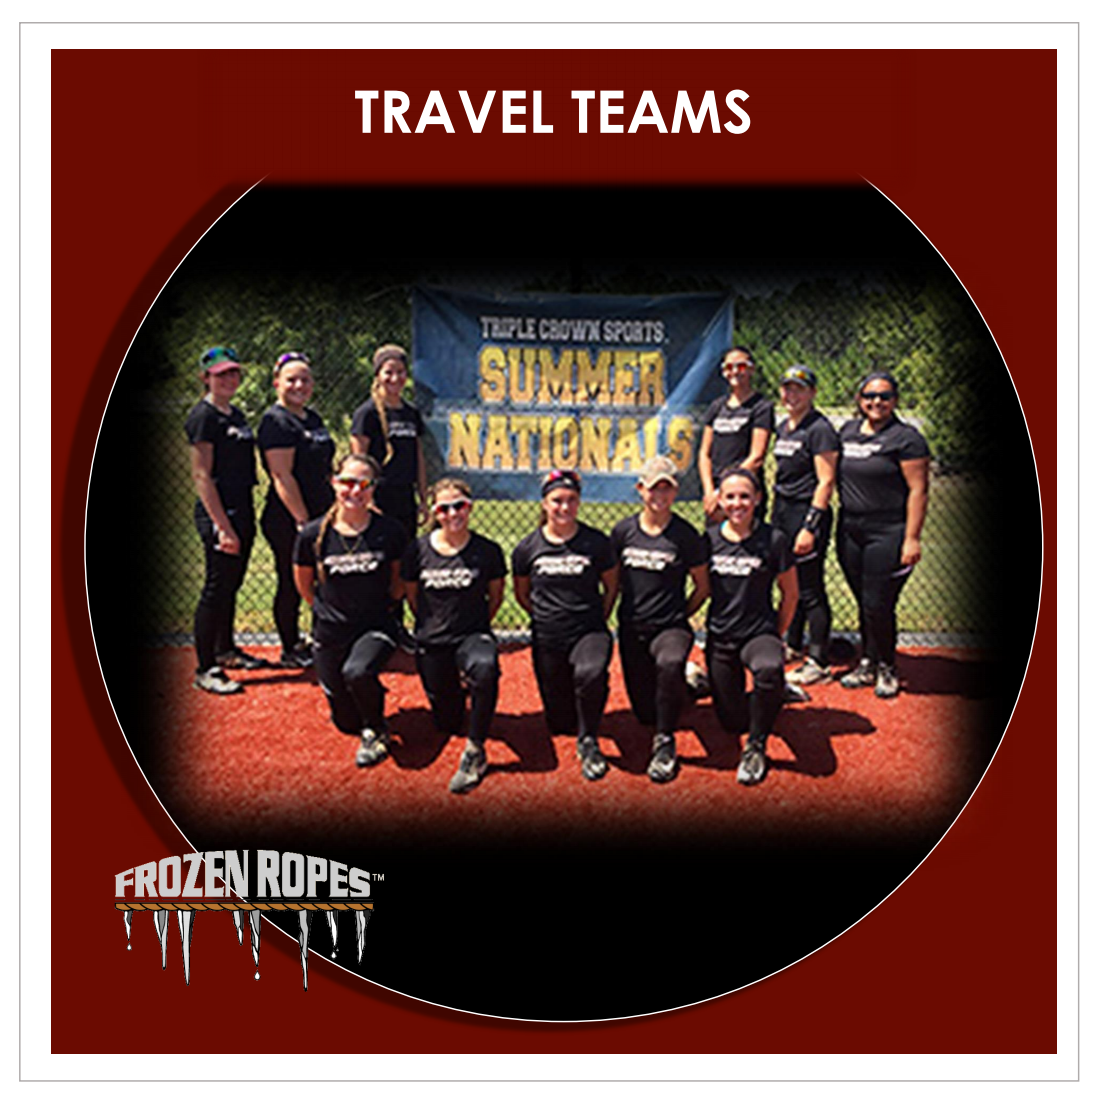 Travel Teams